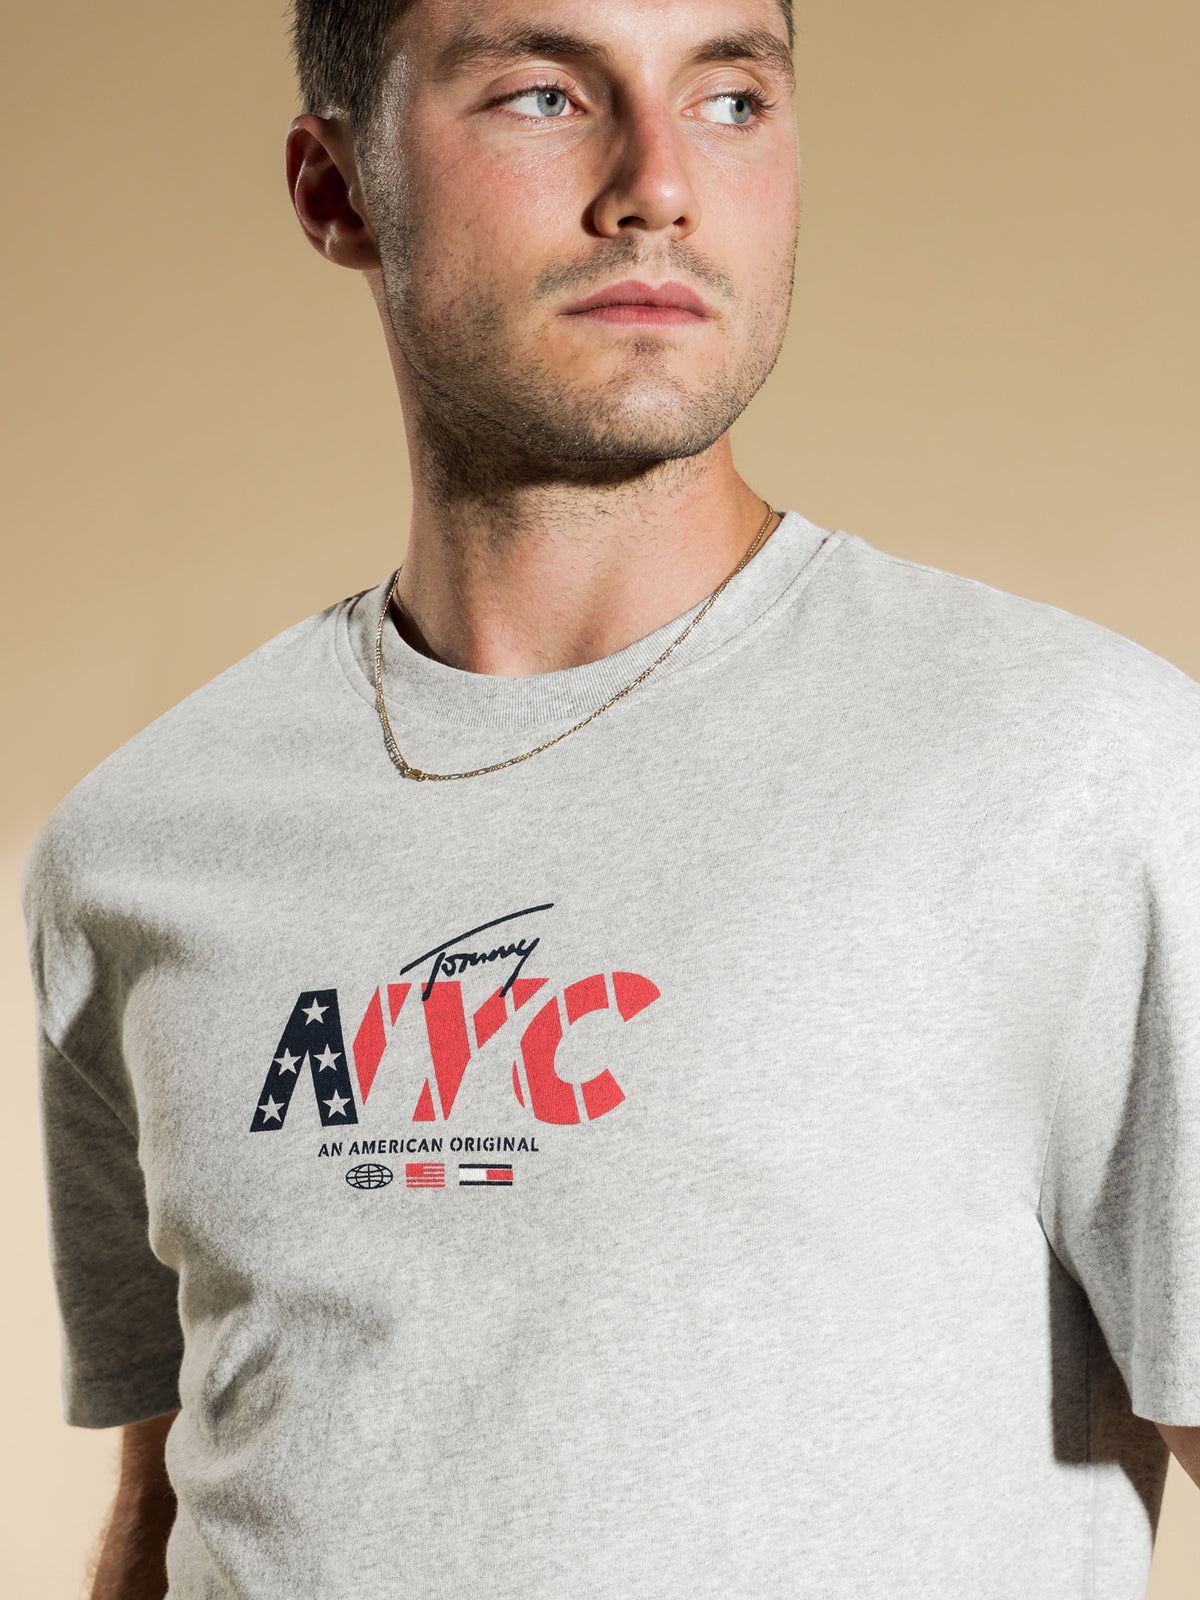 NYC Originals T-Shirt in Light Grey Heather